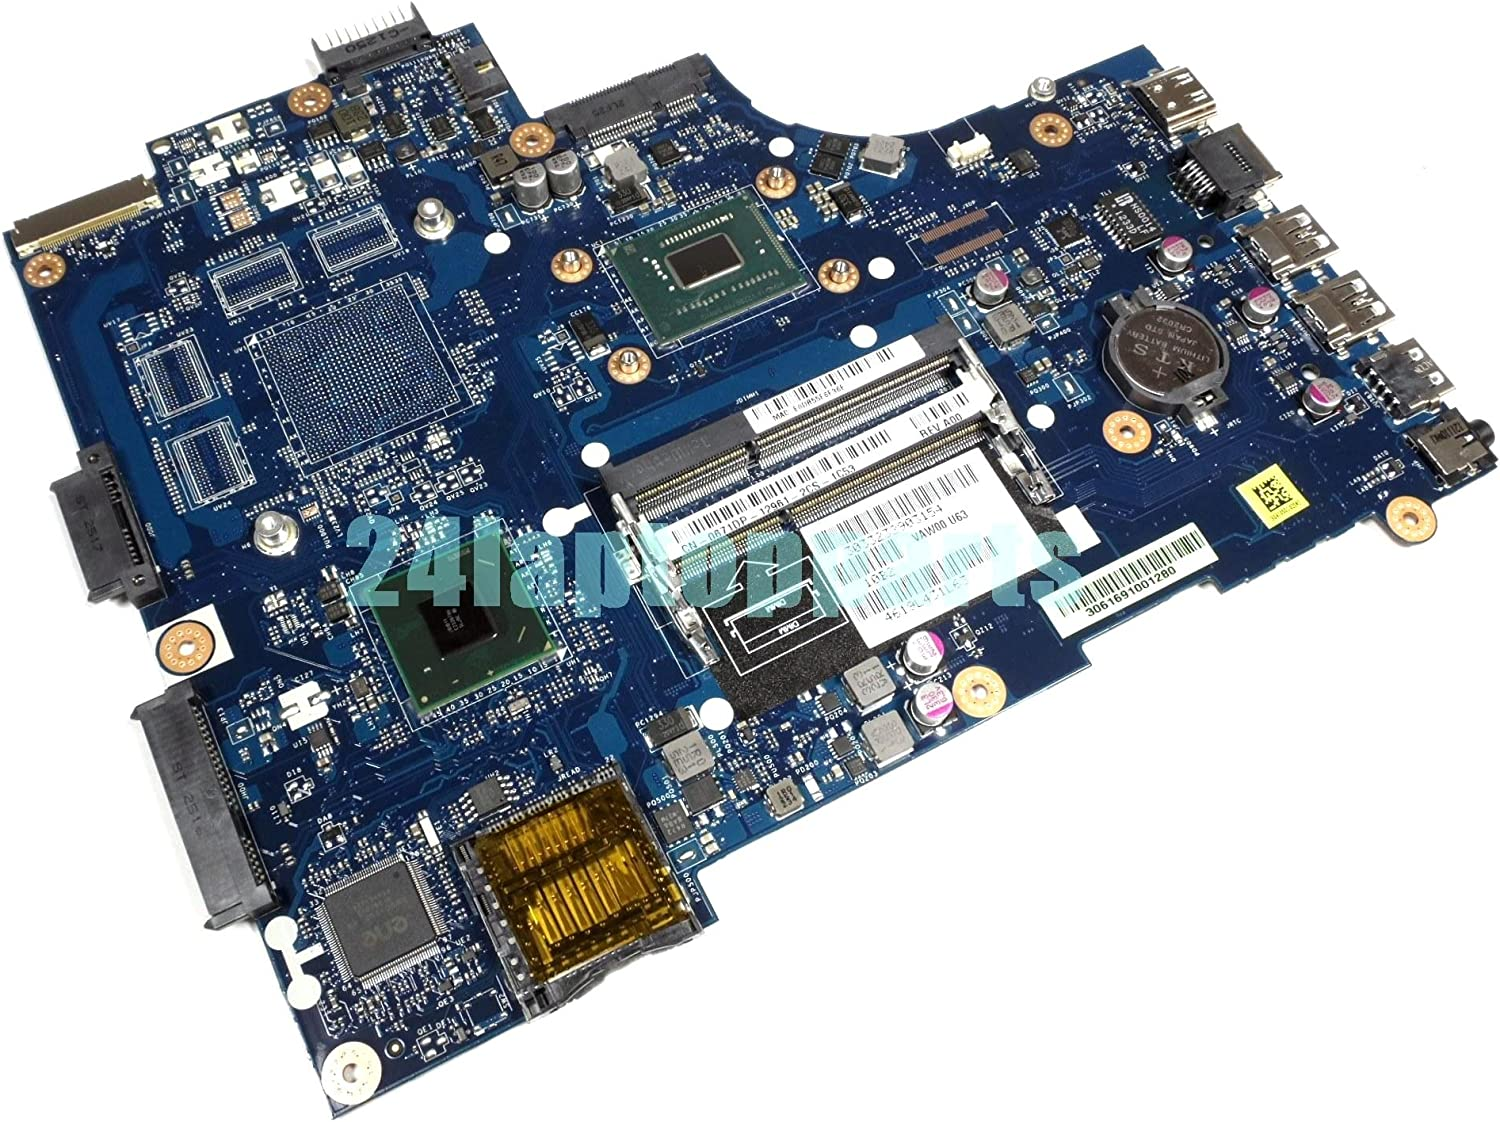 Dell Inspiron 15 3521 Series With Intel Core 2117U CPU Motherboard 671DP 0671DP